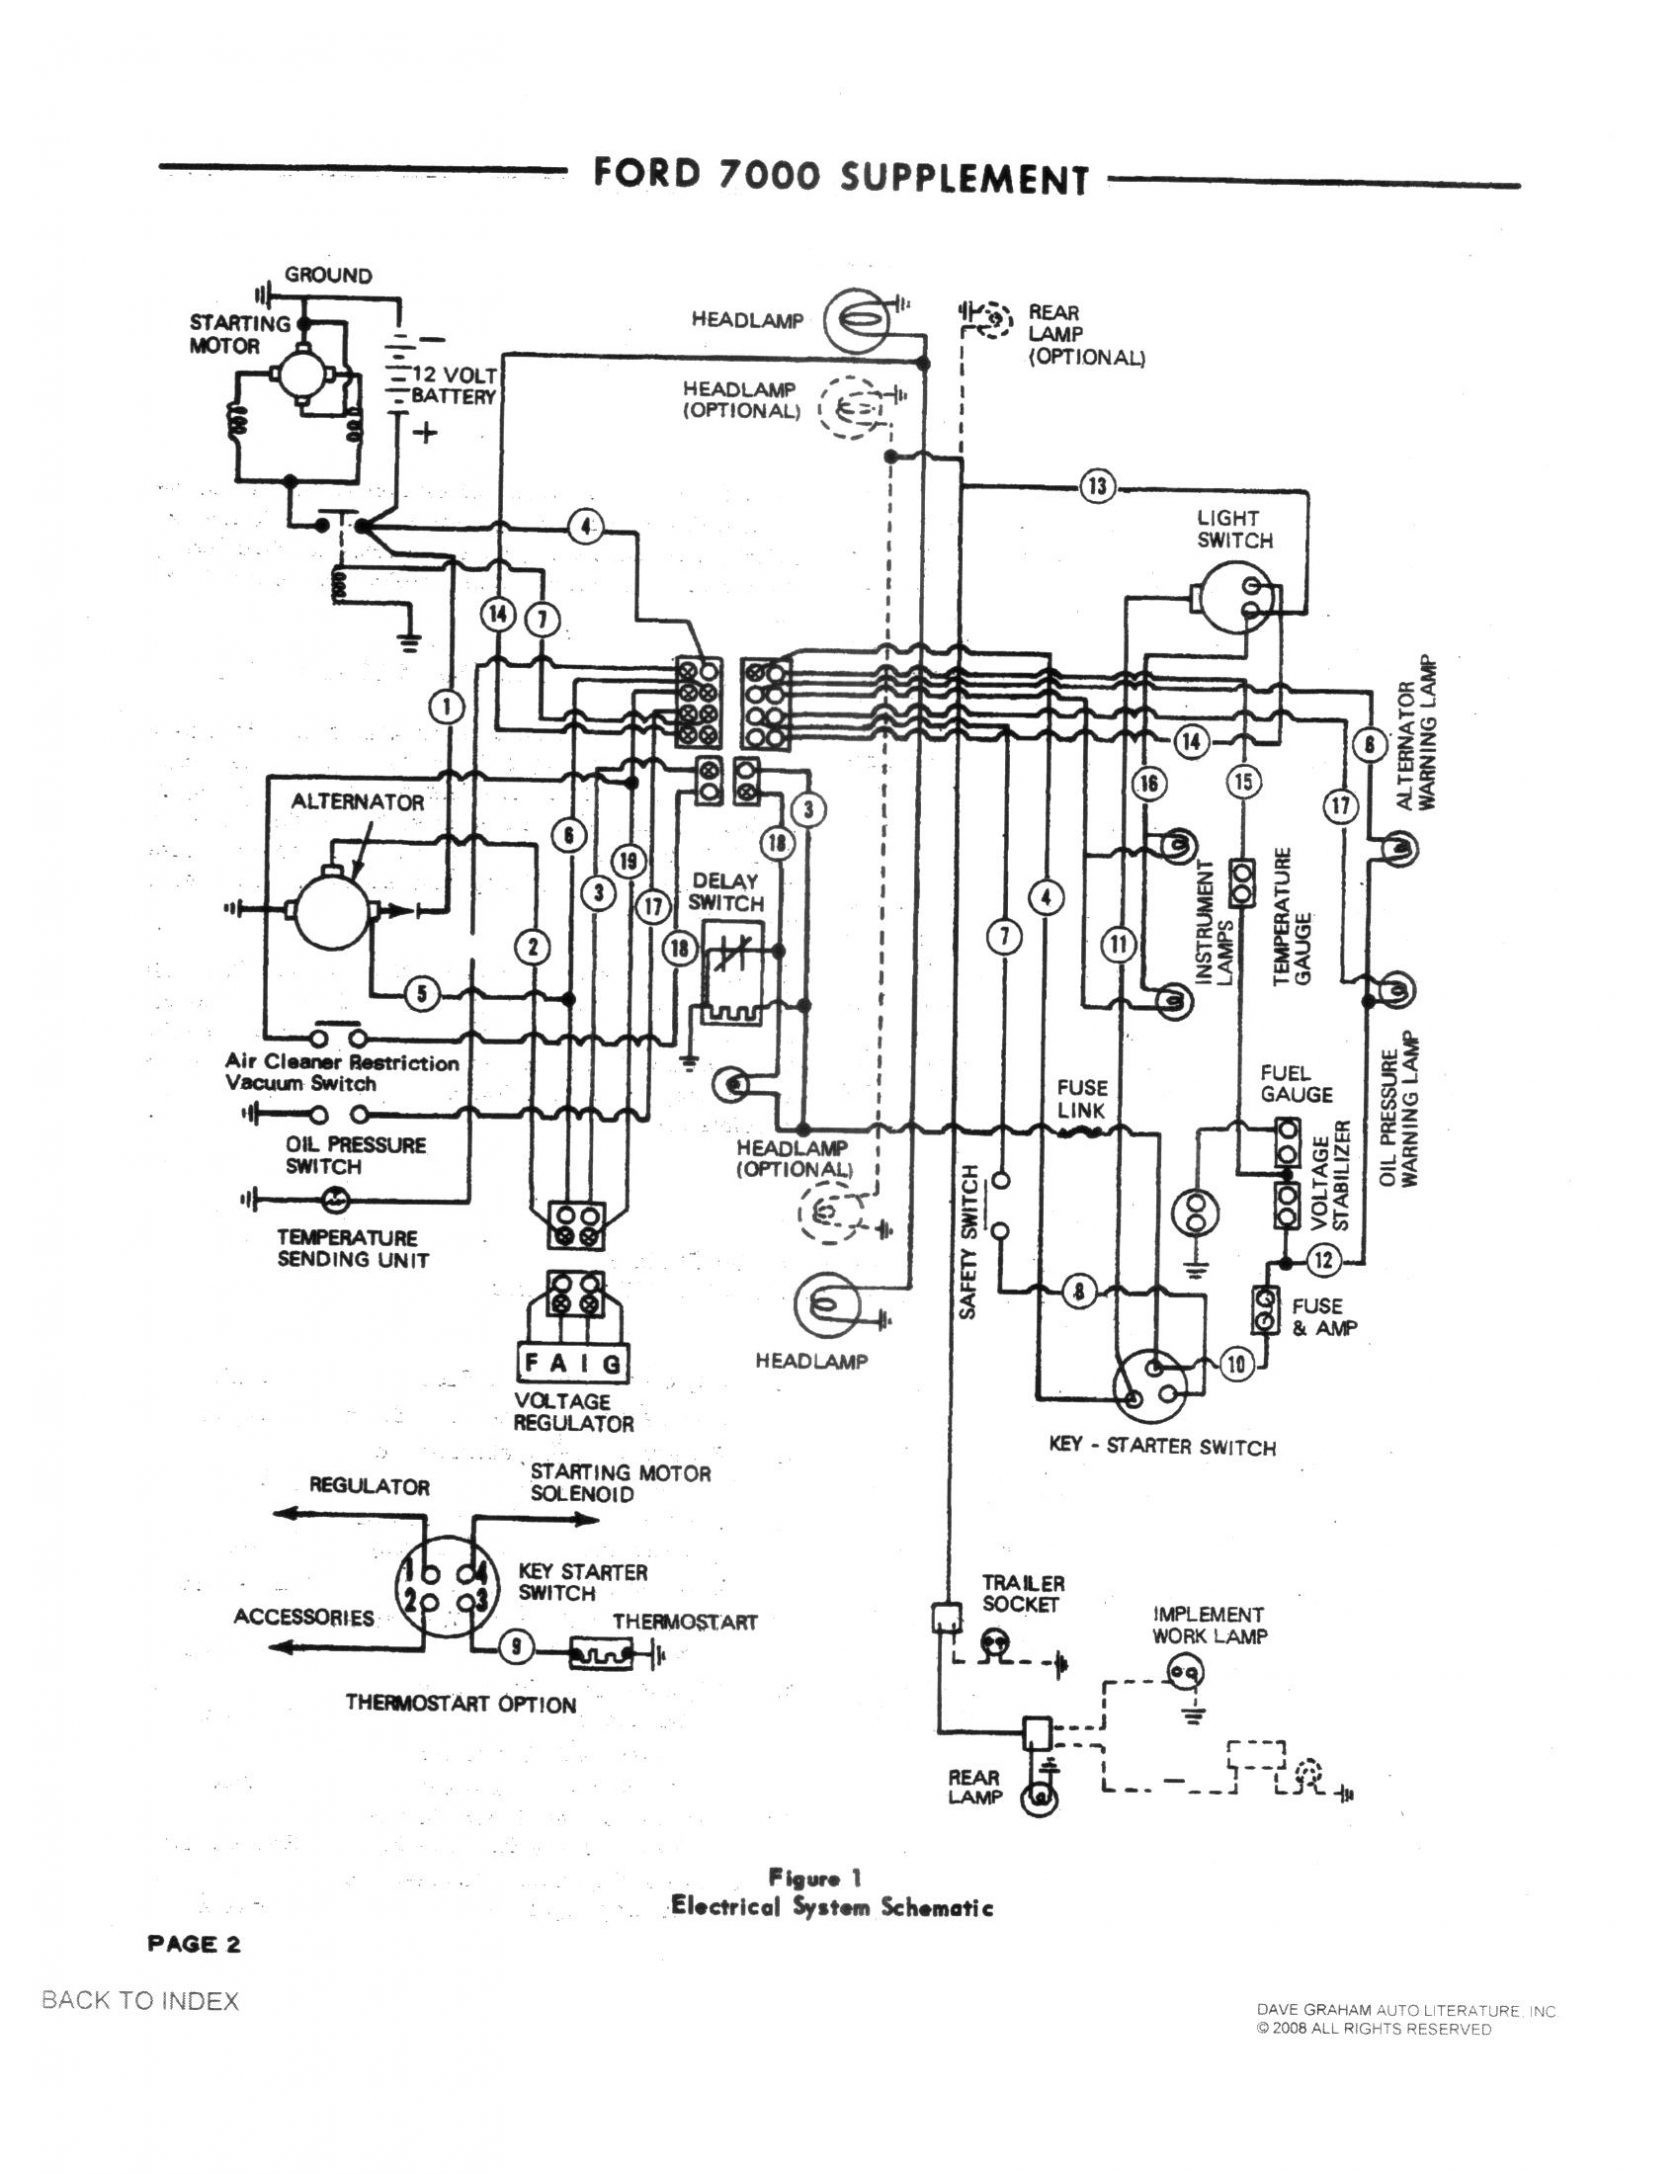 12 volt alternator wiring schematic Download-Wiring Diagram 12 Volt Alternator Valid Obd1 Alternator Wiring Diagram Fresh Beste Ls1 Anlasser Schaltplan 18-p